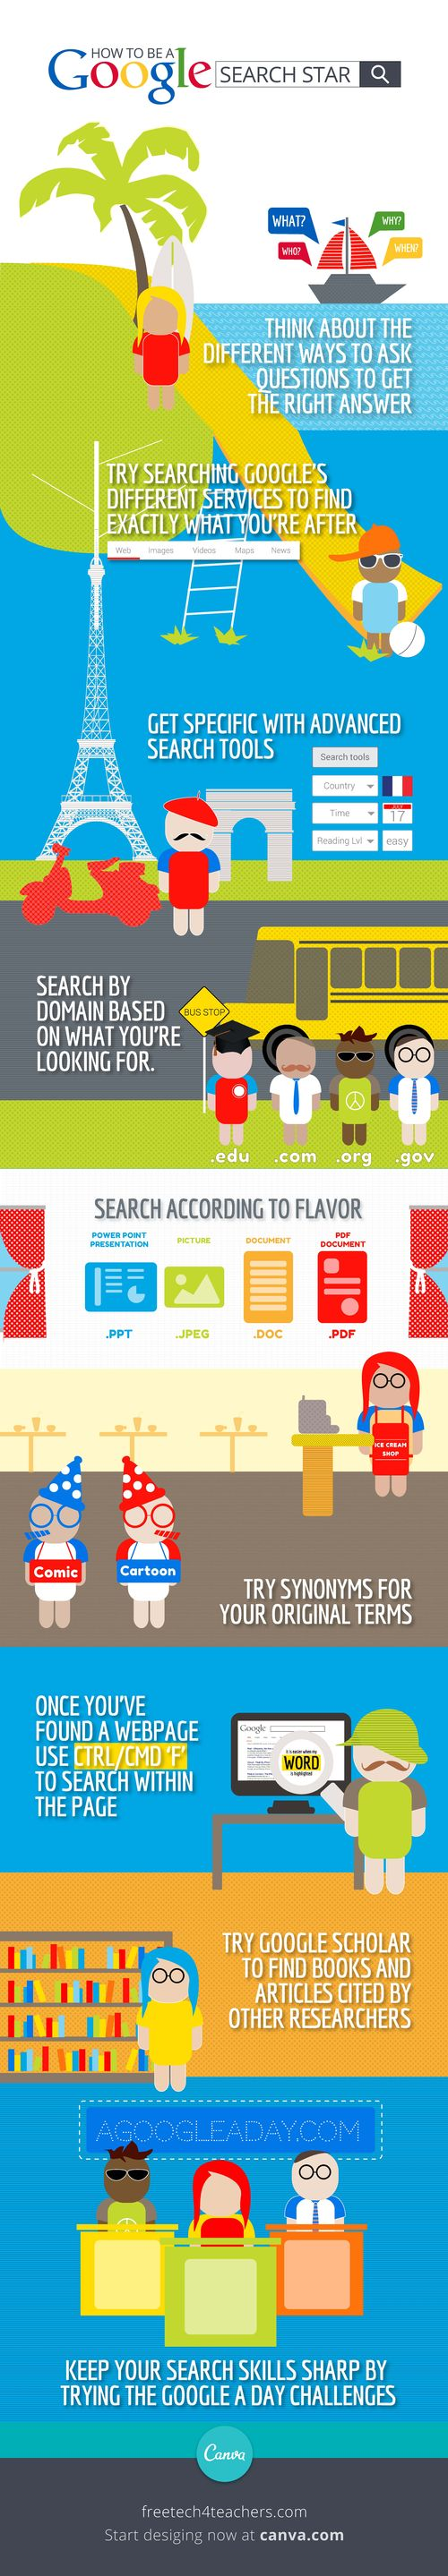 GoogleSearch-Infographic